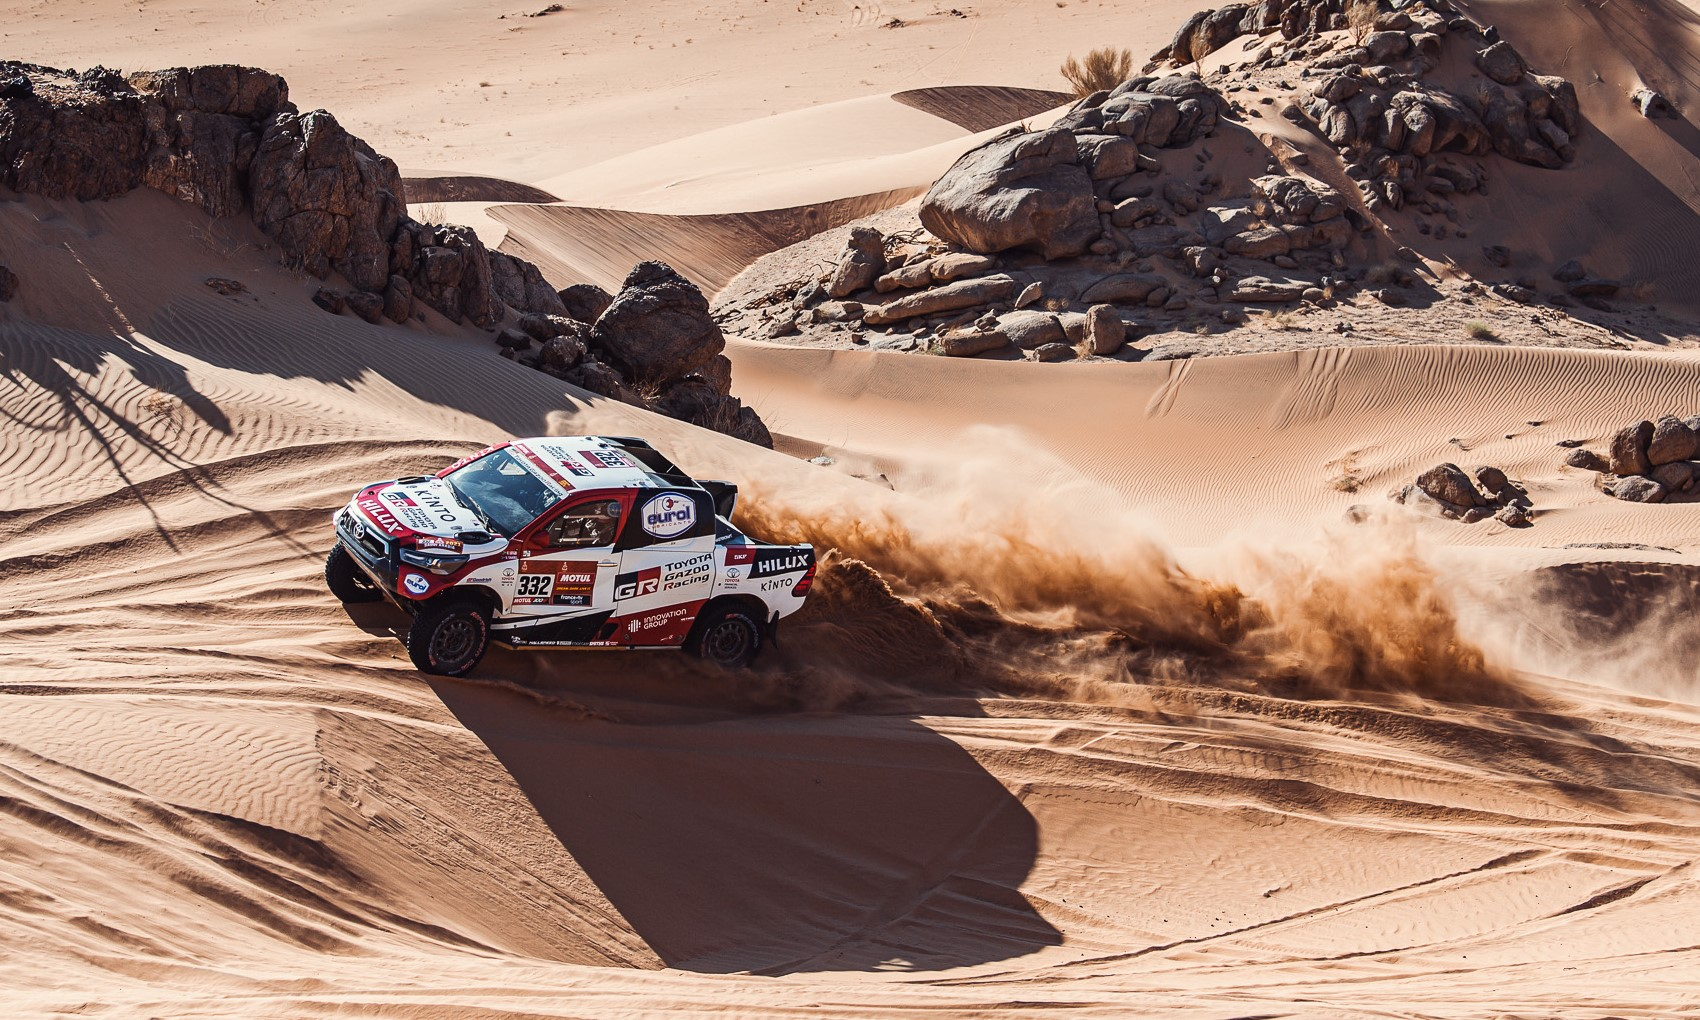 Henk Lategan ran extremely well on 2021 Dakar Stage 3